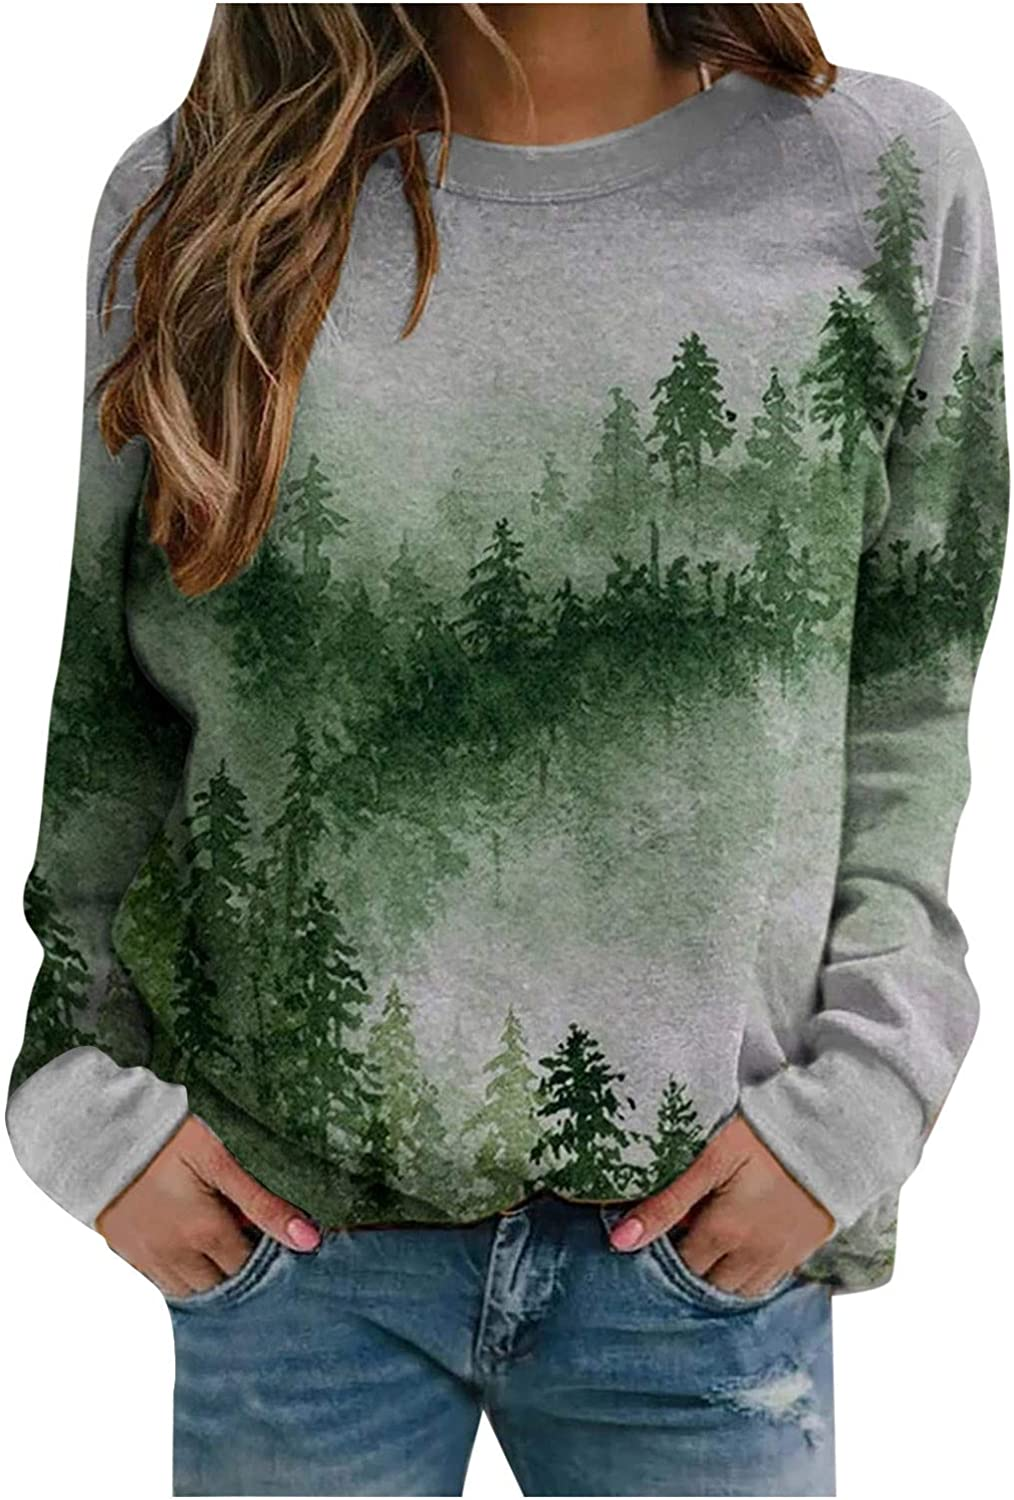 wlczzyn We OFFer at cheap prices Sweatshirts for Women Landscape Print Austin Mall Sleev Sweater Long